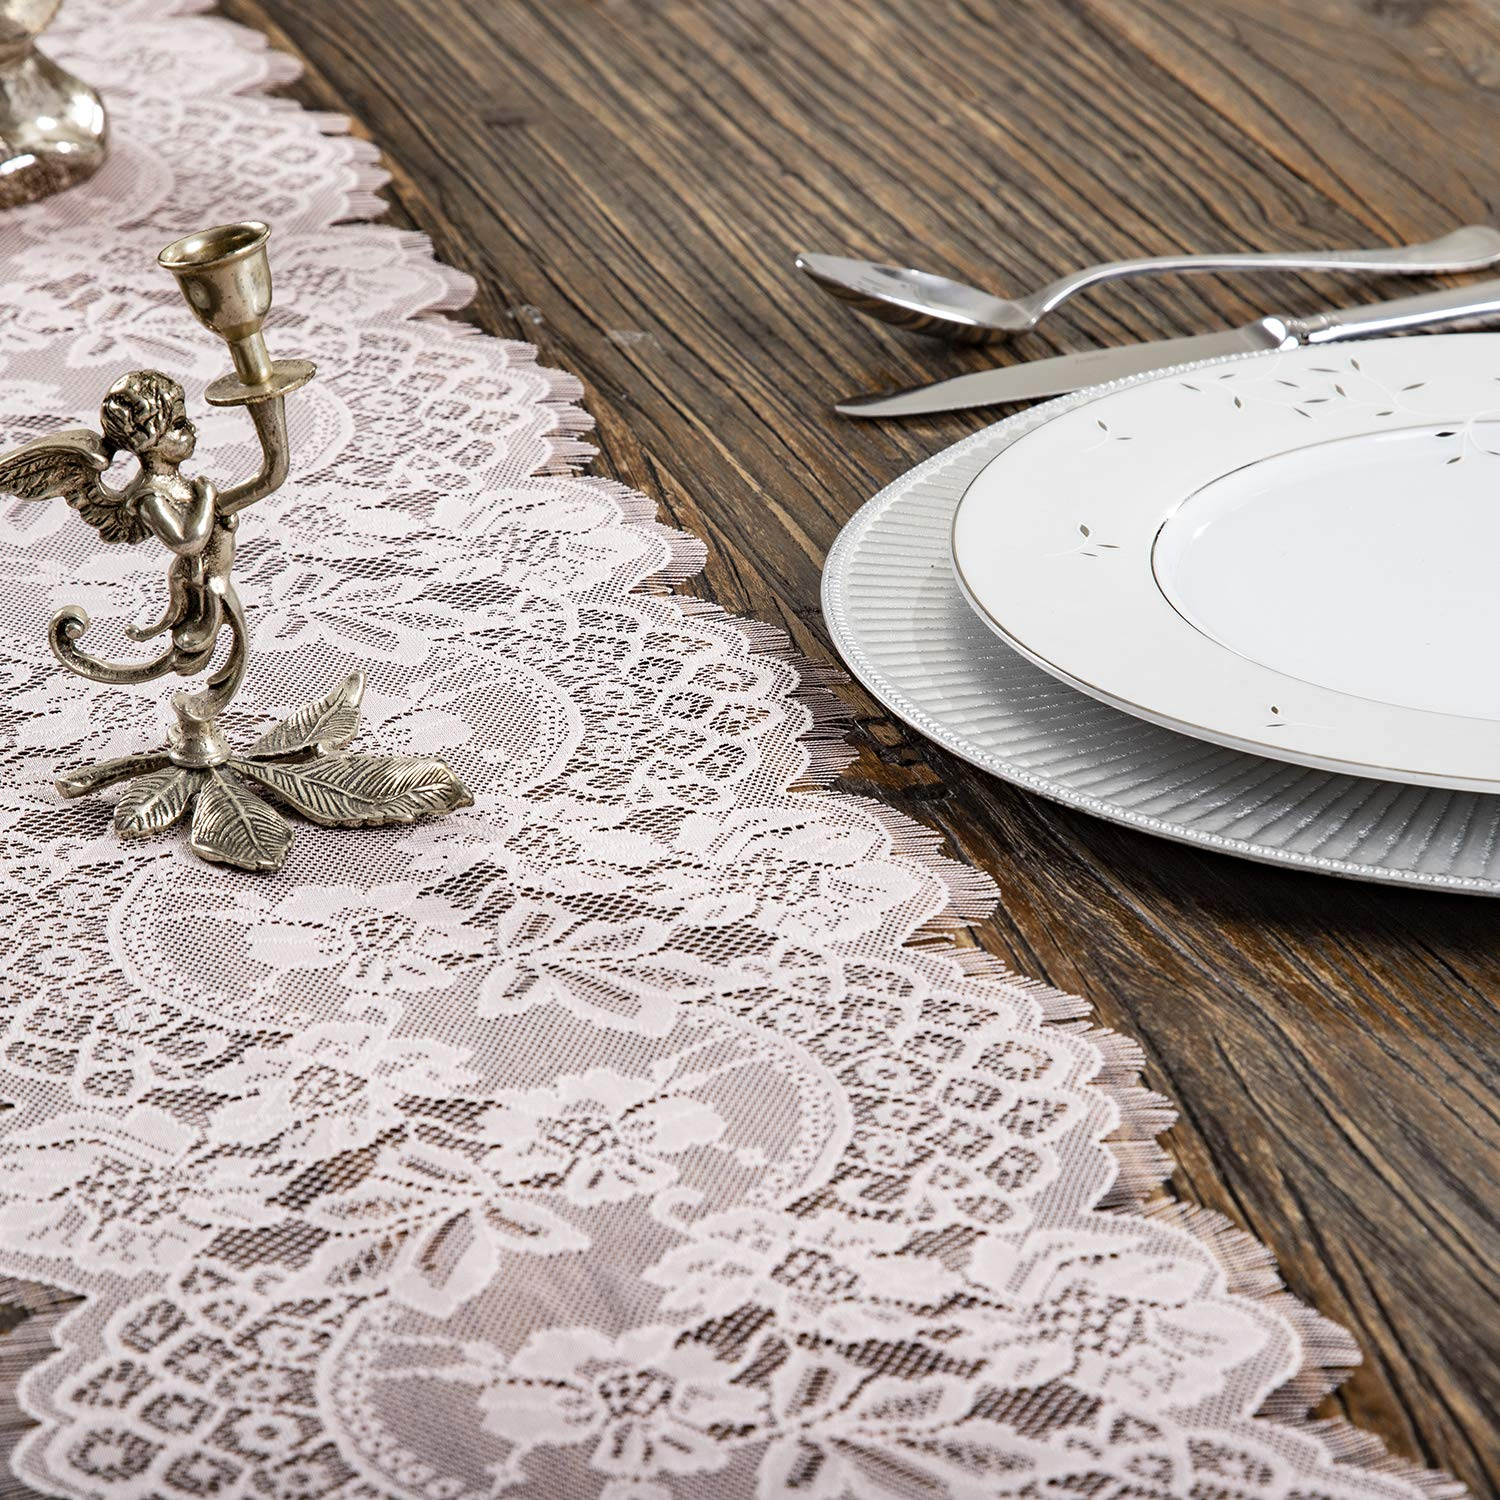 Embroidered and Durable Blush Pink Lace Table Runner-Feminen 12''x120'' with Floral Fringe-Perfect for Outdoor and Chic Wedding and Bridal/Baby Shower Decorations (1 Piece)